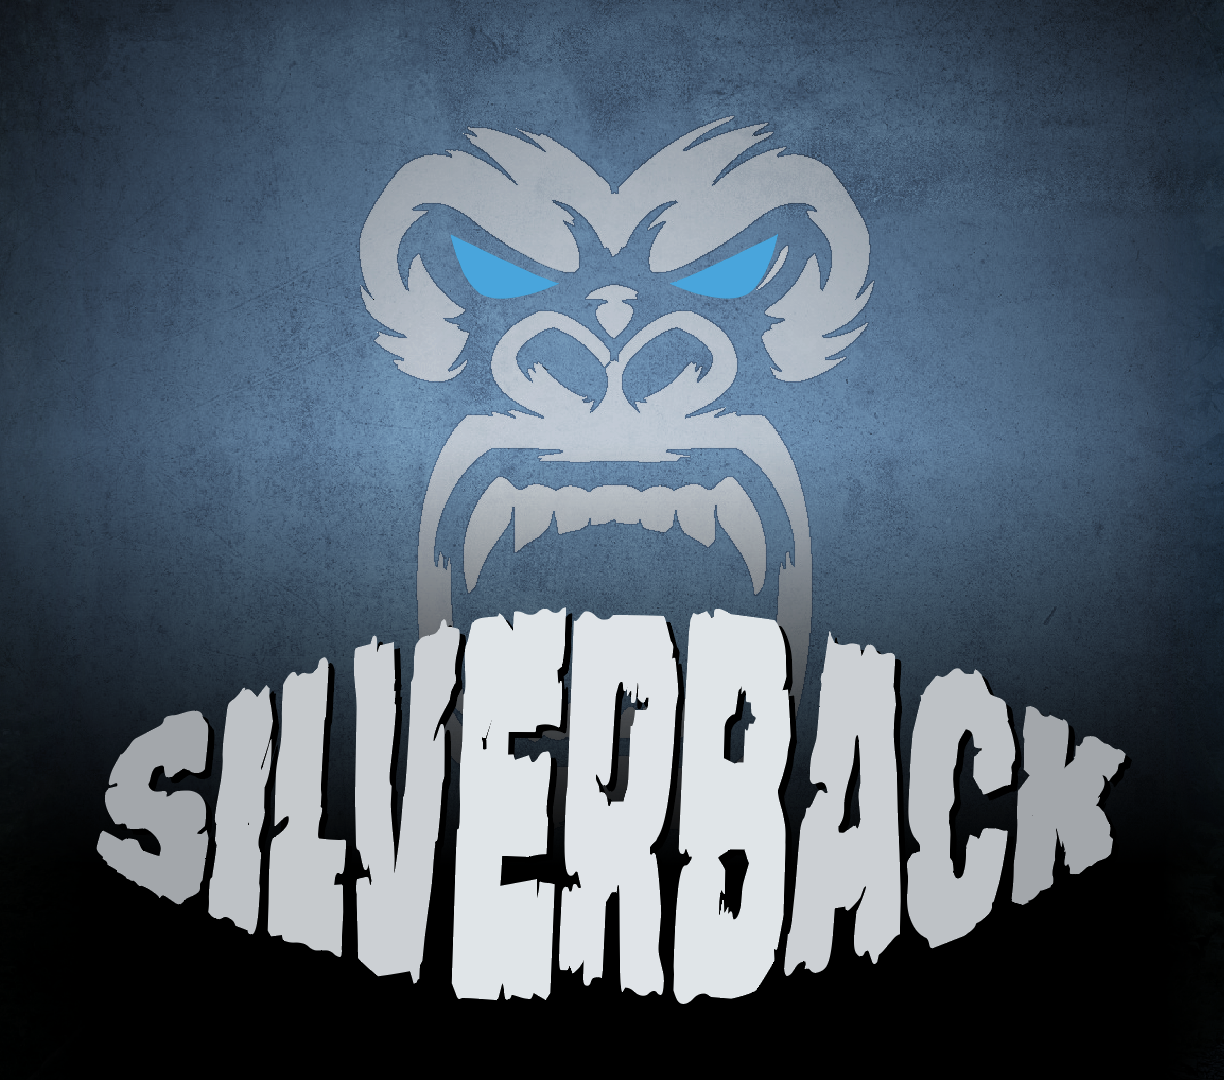 The Silverback Series